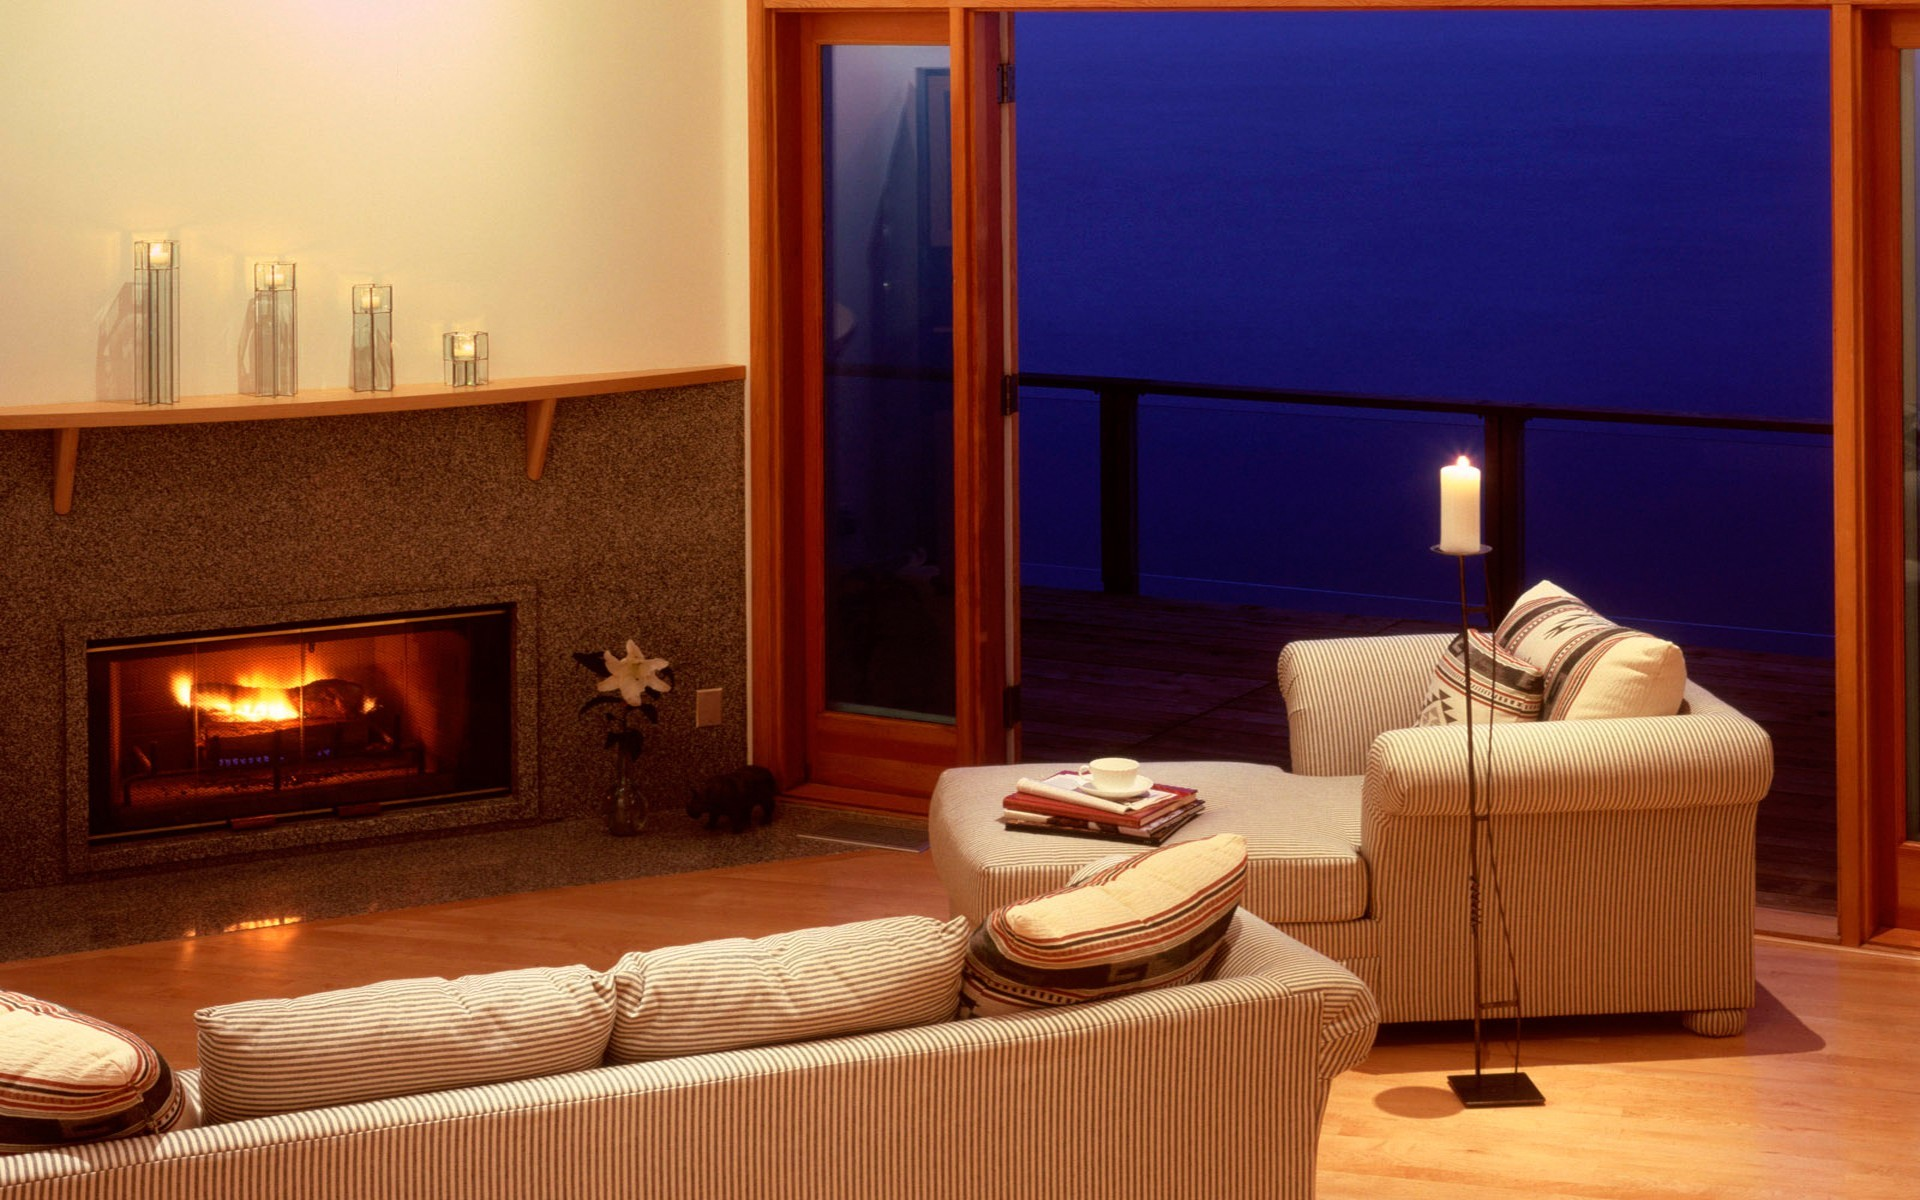 room woman fireplaces HD Wallpaper